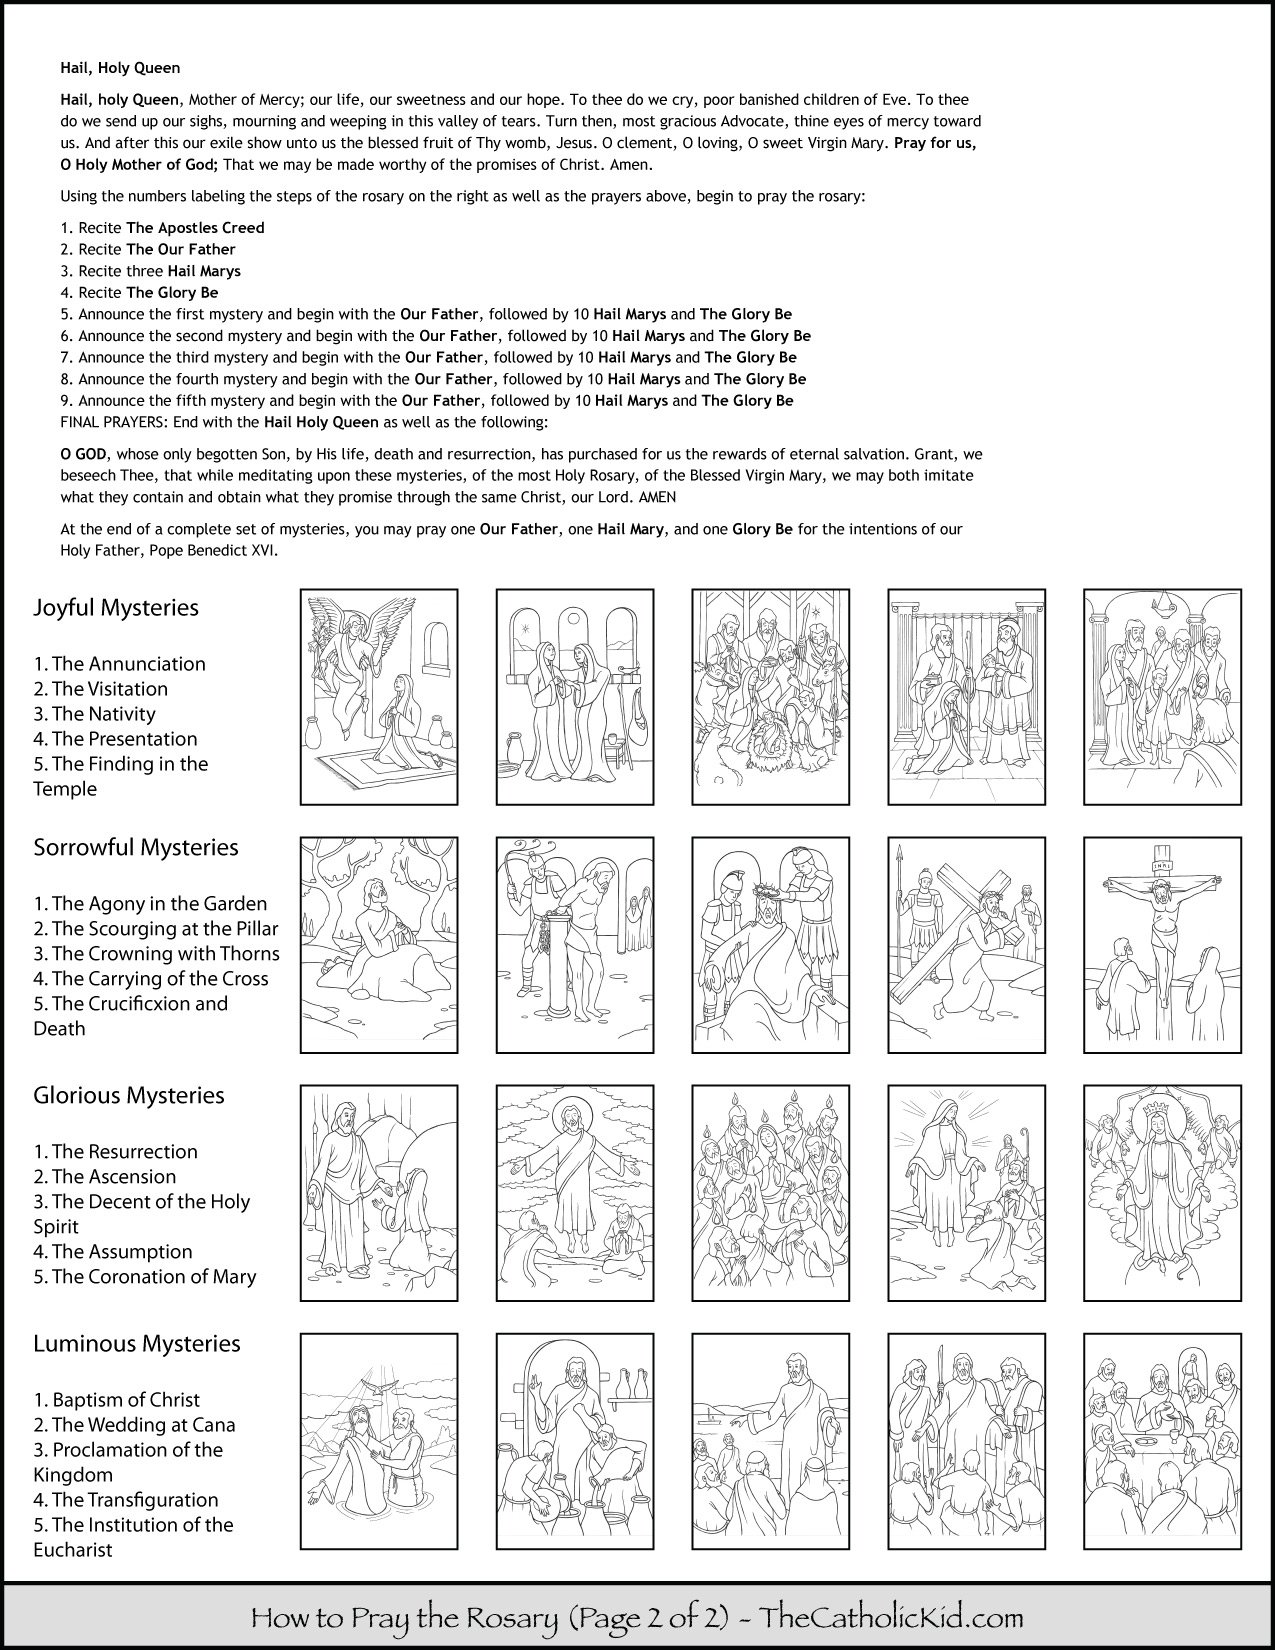 image regarding How to Pray the Rosary for Kids Printable known as How towards Pray the Rosary Coloring Site for Little ones